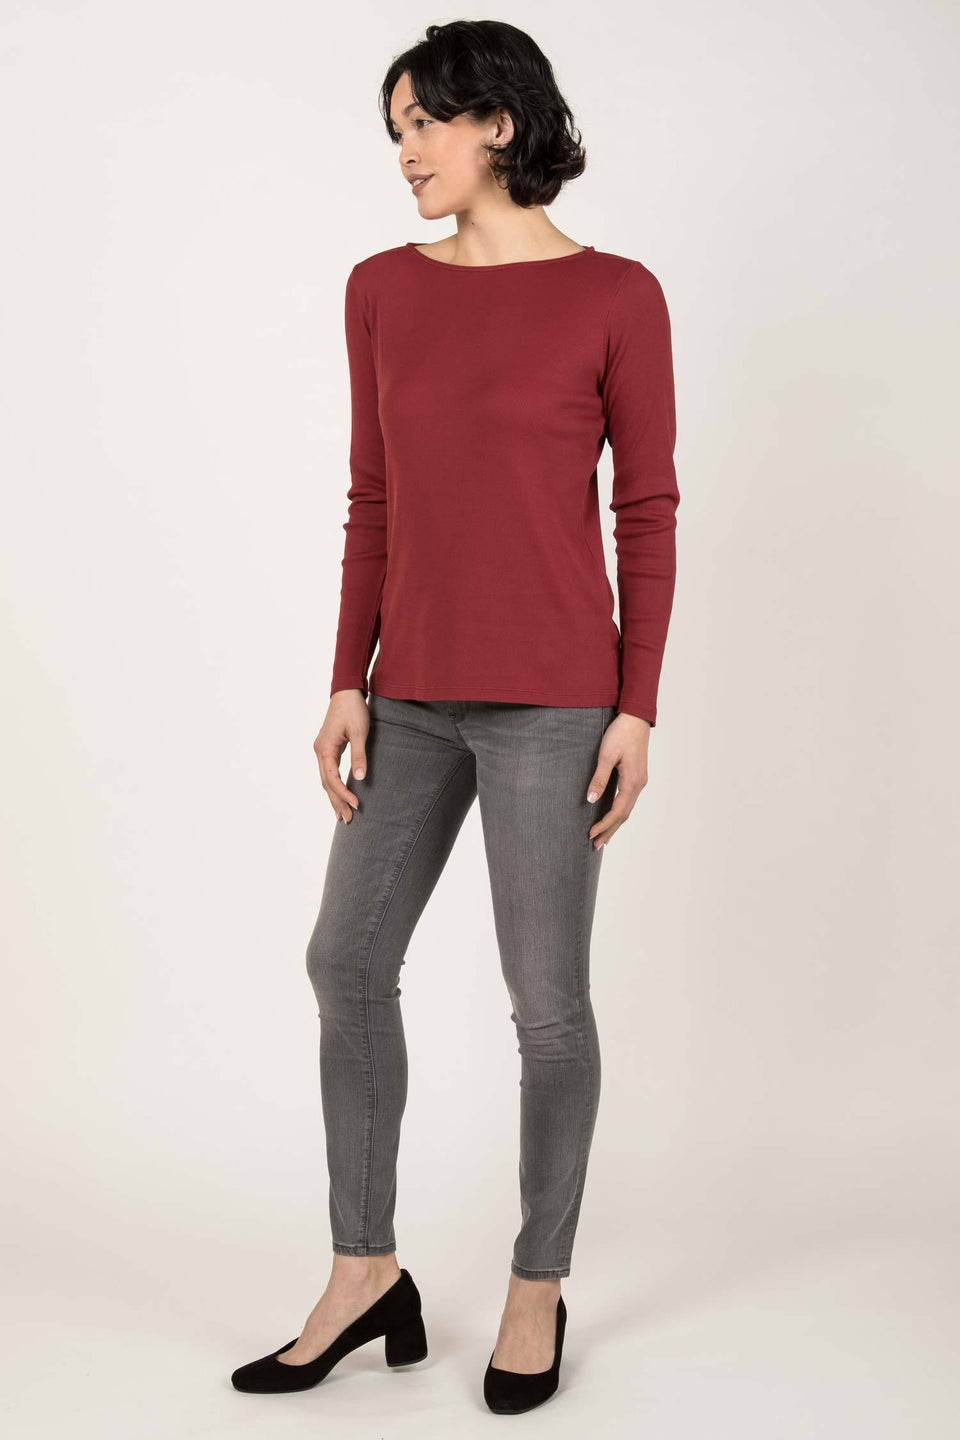 Rib Boatneck Tee in Cherry Red